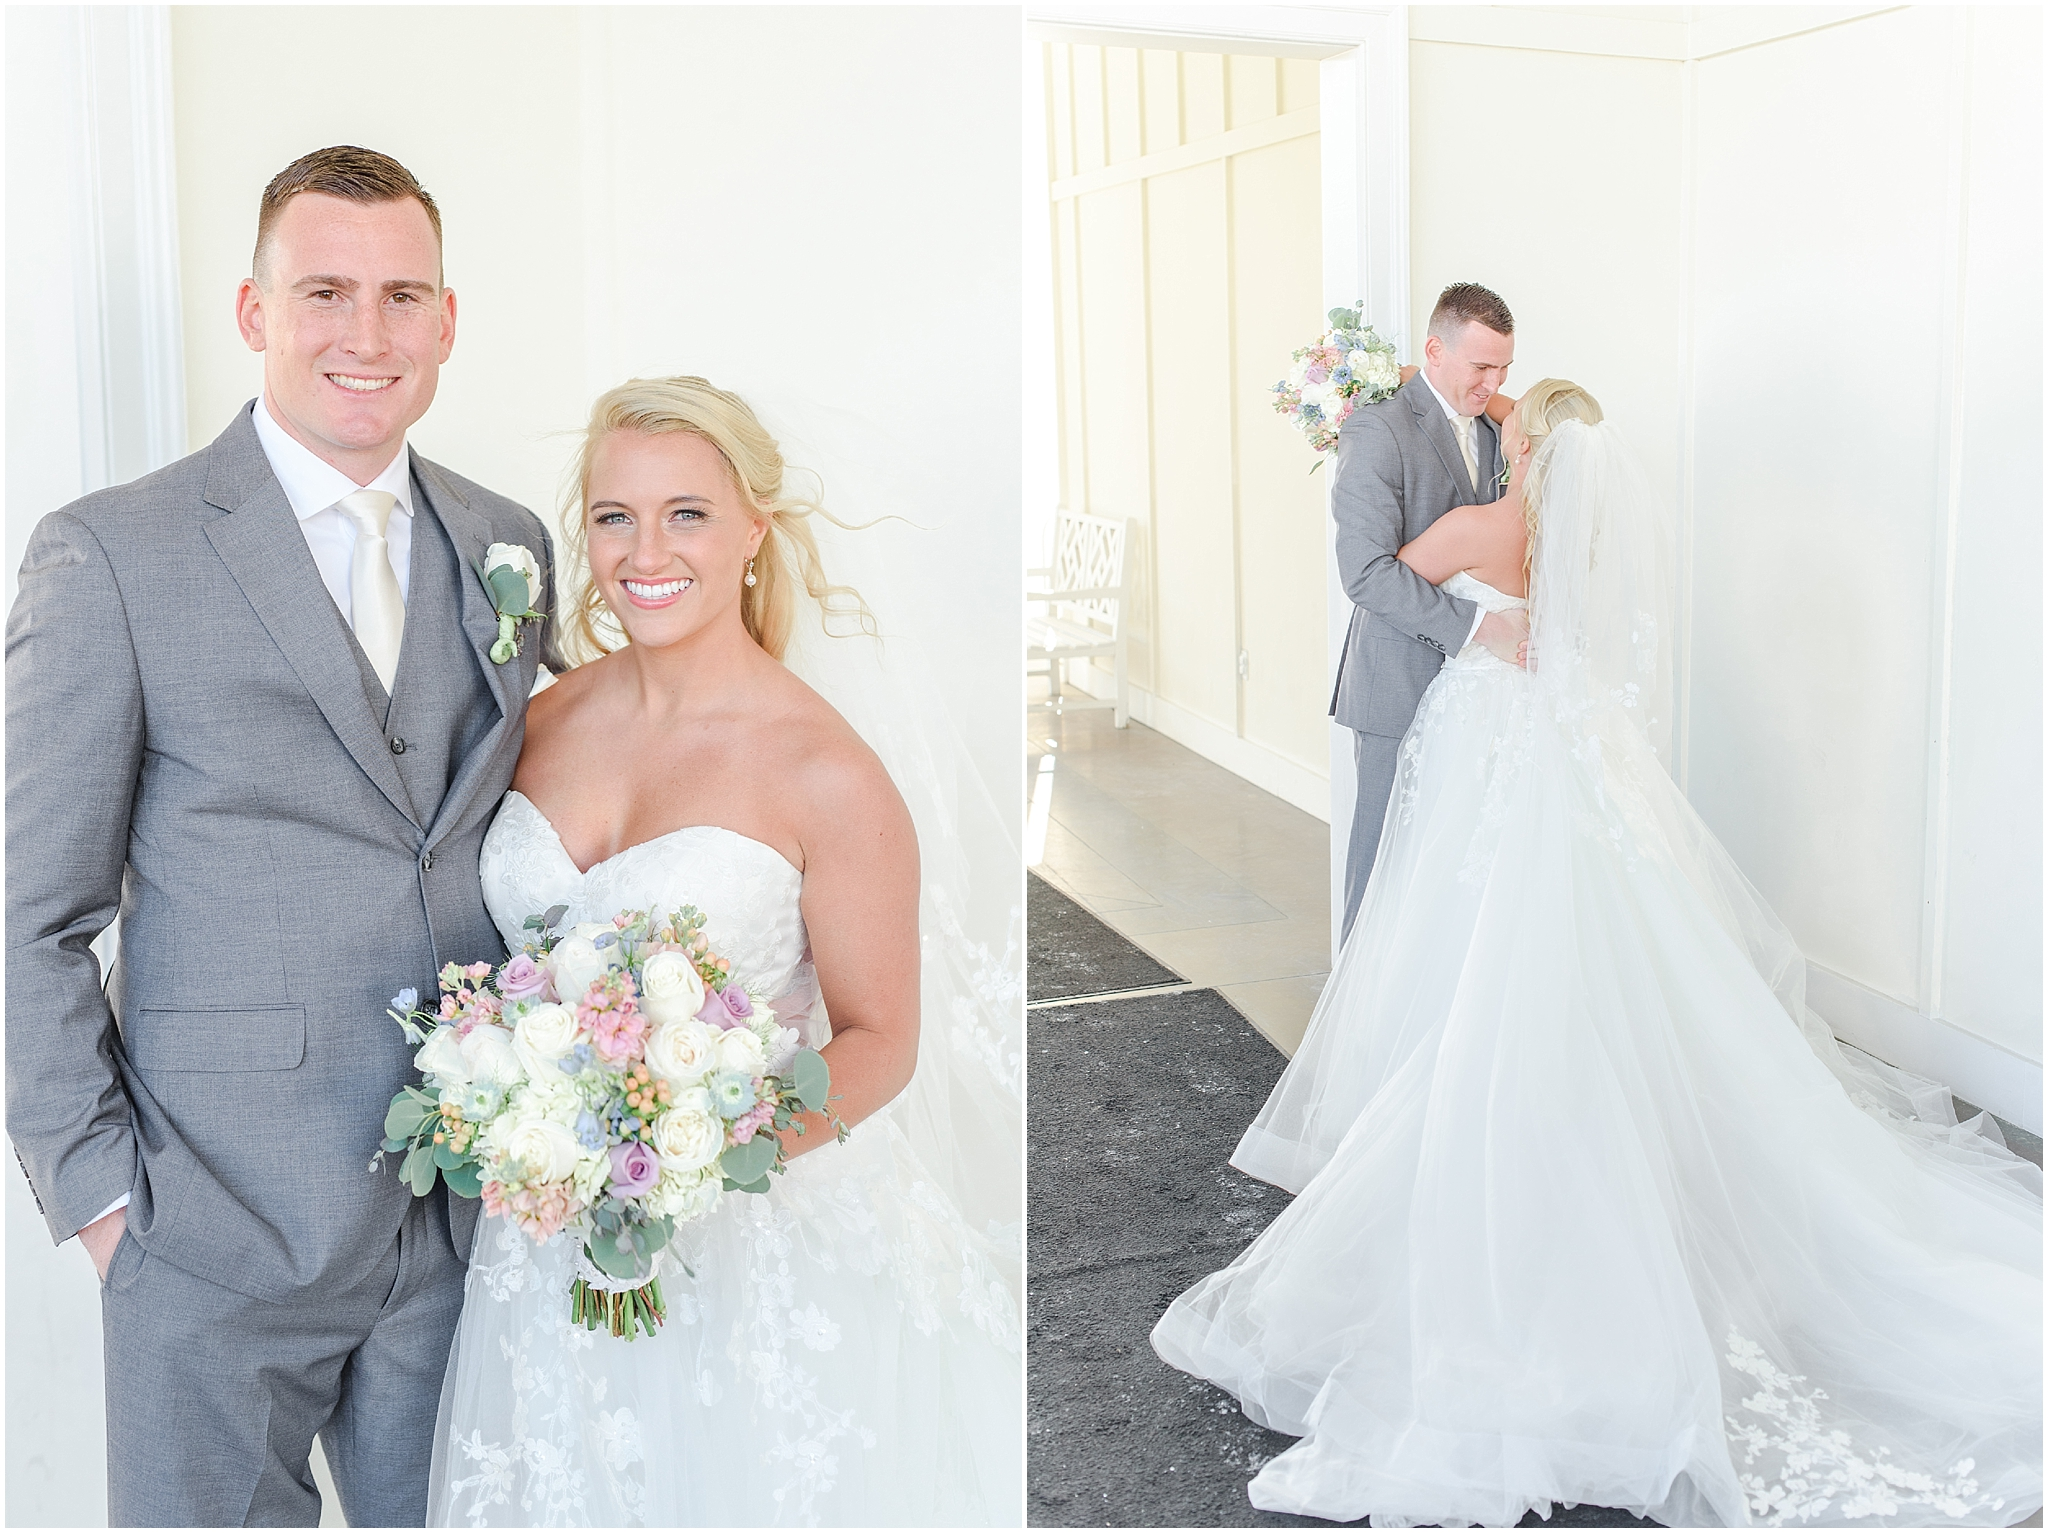 Stockton Seaview Wedding, New Jersey Wedding Photographer by Olivia Rae Photography